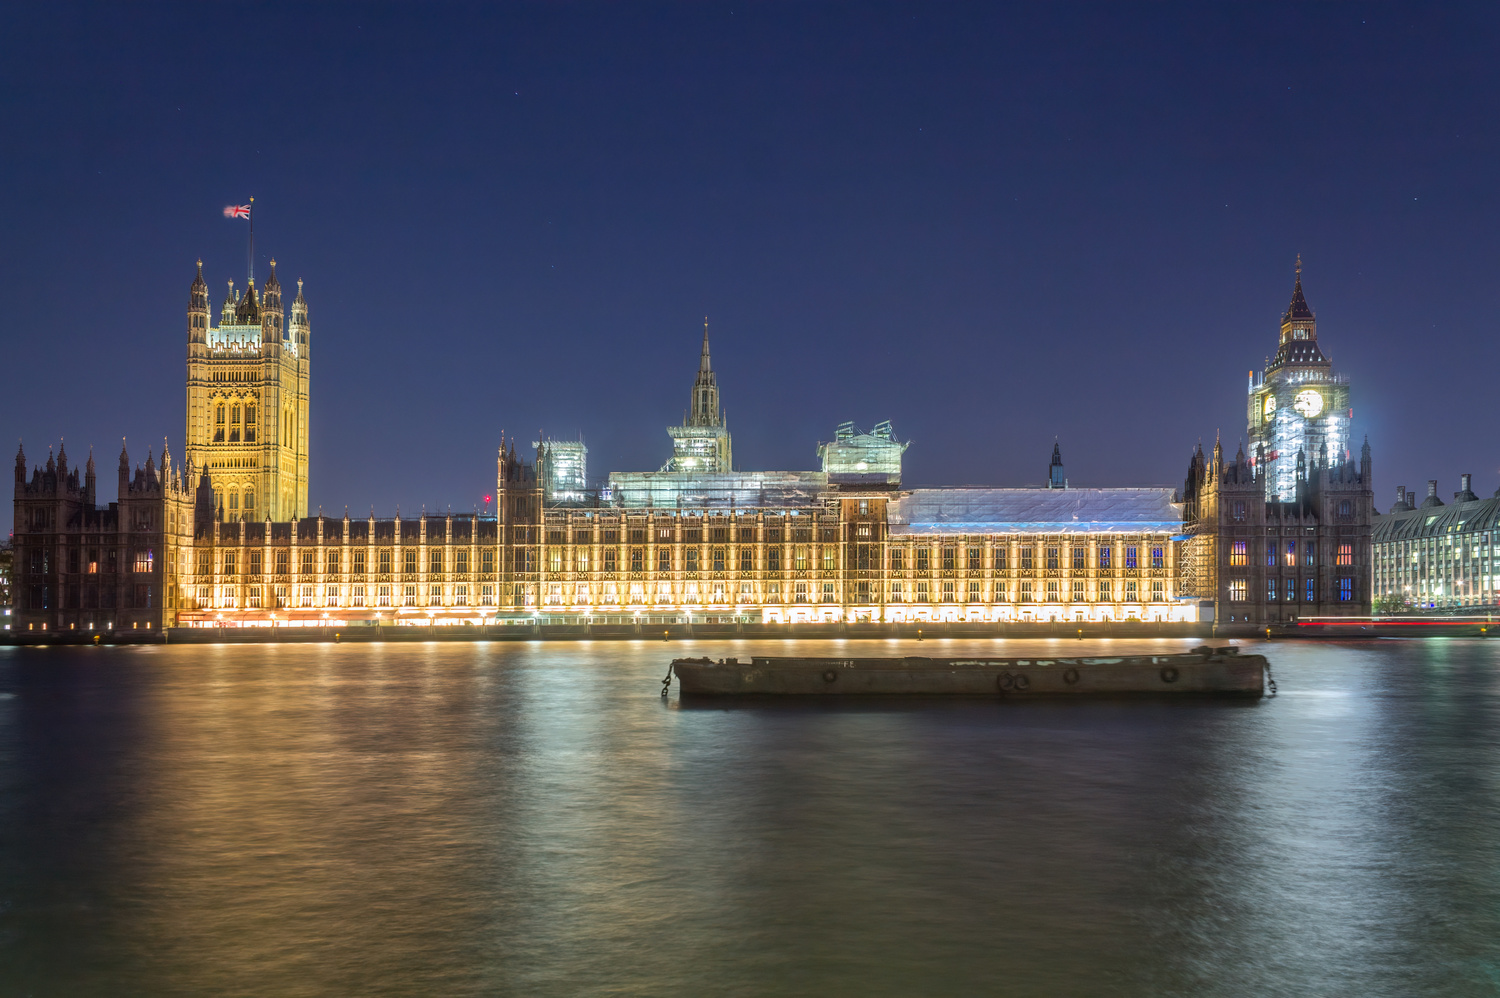 Stars above the Parliament by Luca Campioni